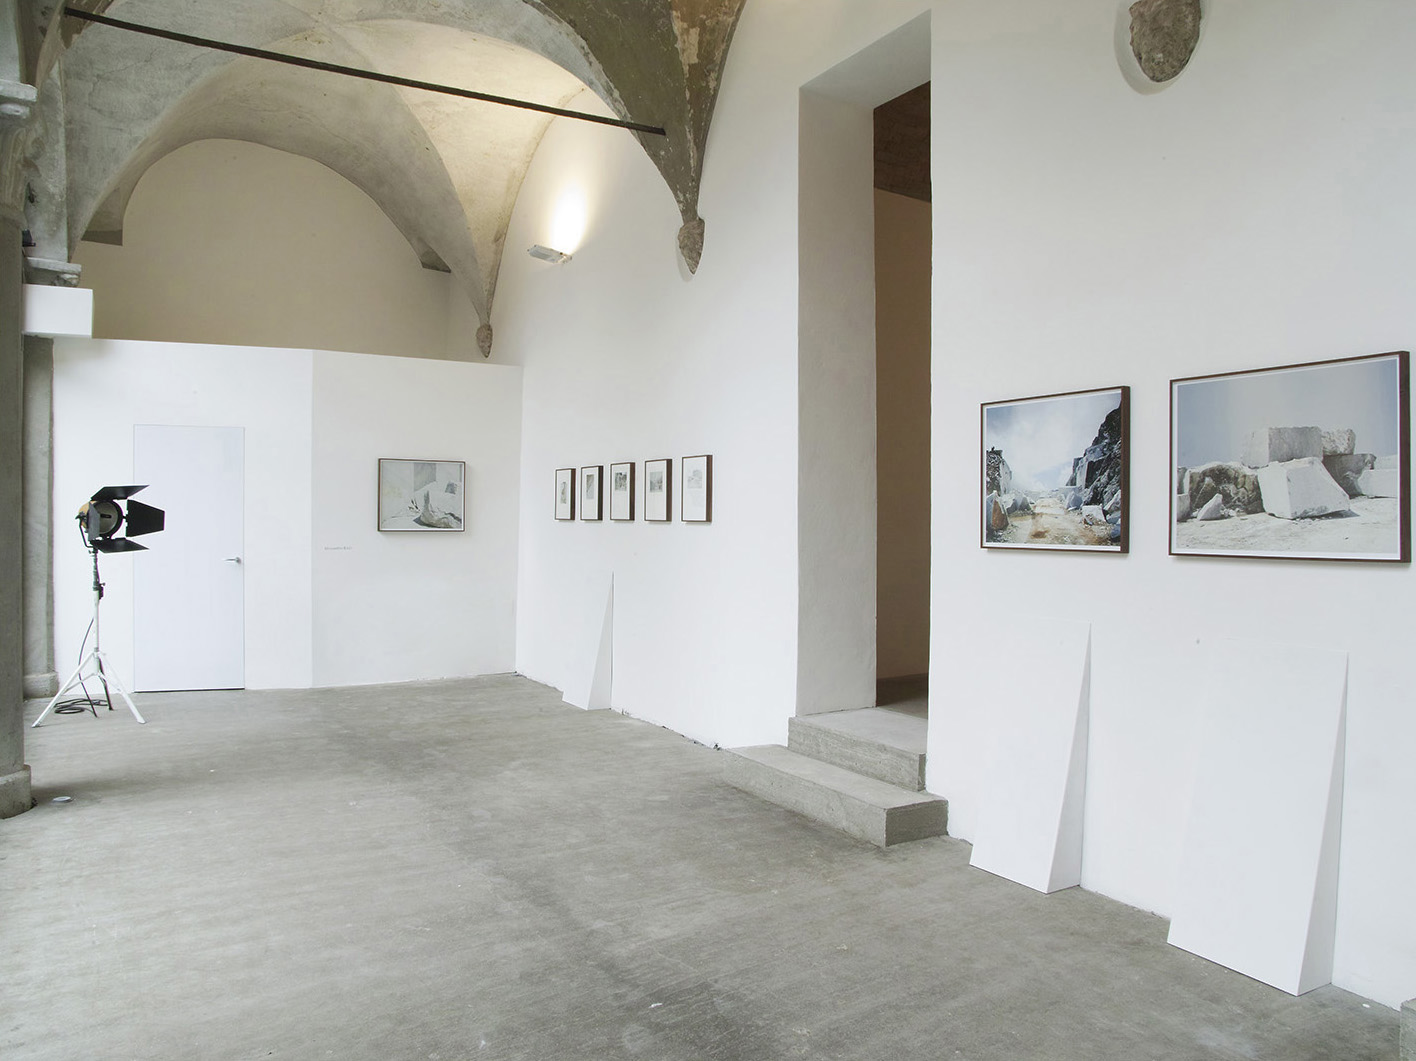 THE REMAINS OF THE WHOLE - APRIL 13 - MAY 18 2019 - PALAZZO CALCAGNI  SUBLIME EXHIBITION